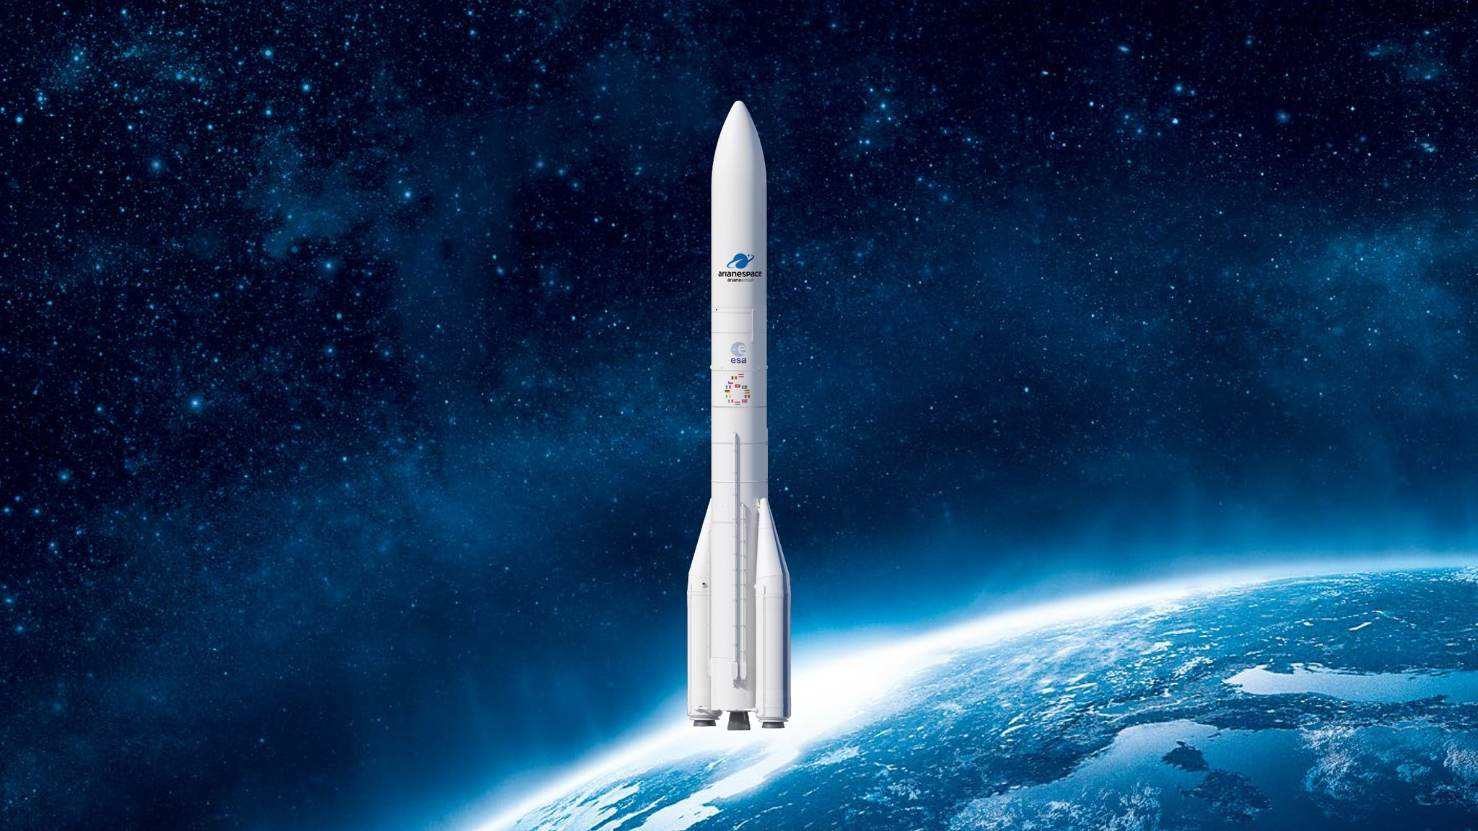 ArianeGroup to start production of first Ariane 62